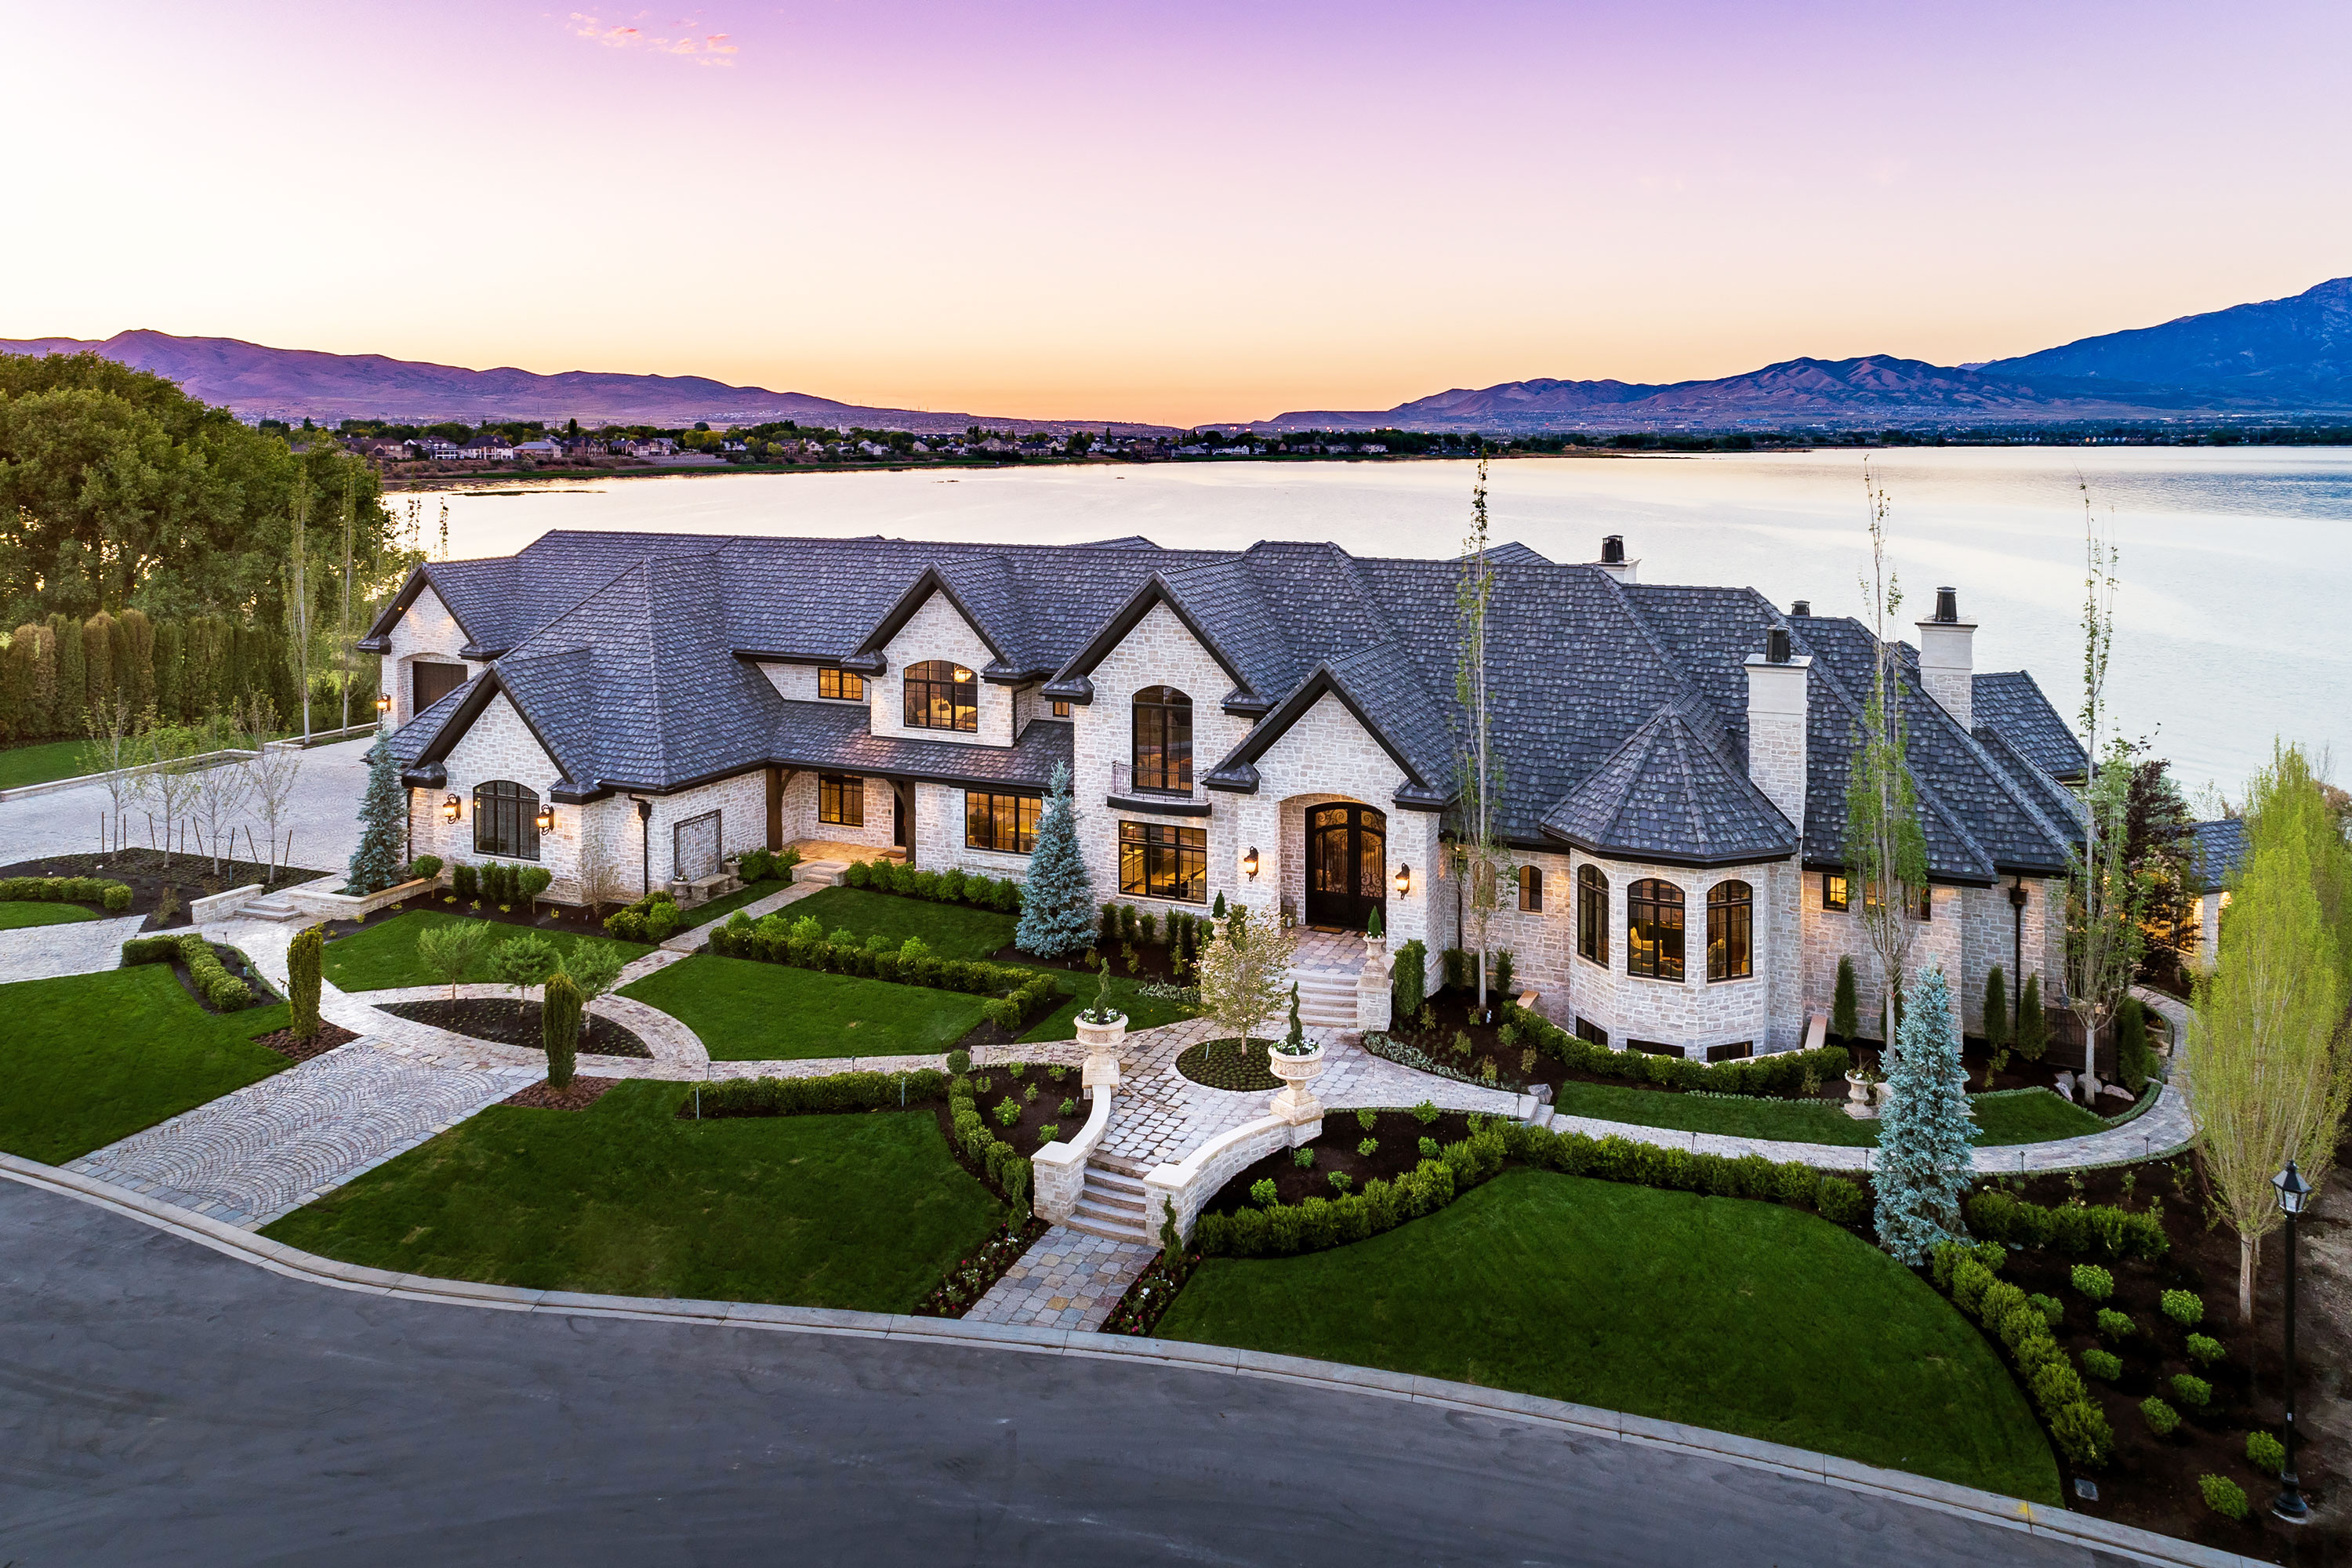 Lakeside Residence - Saratoga Springs, Utah. Aerial Photography by Alan Blakely.